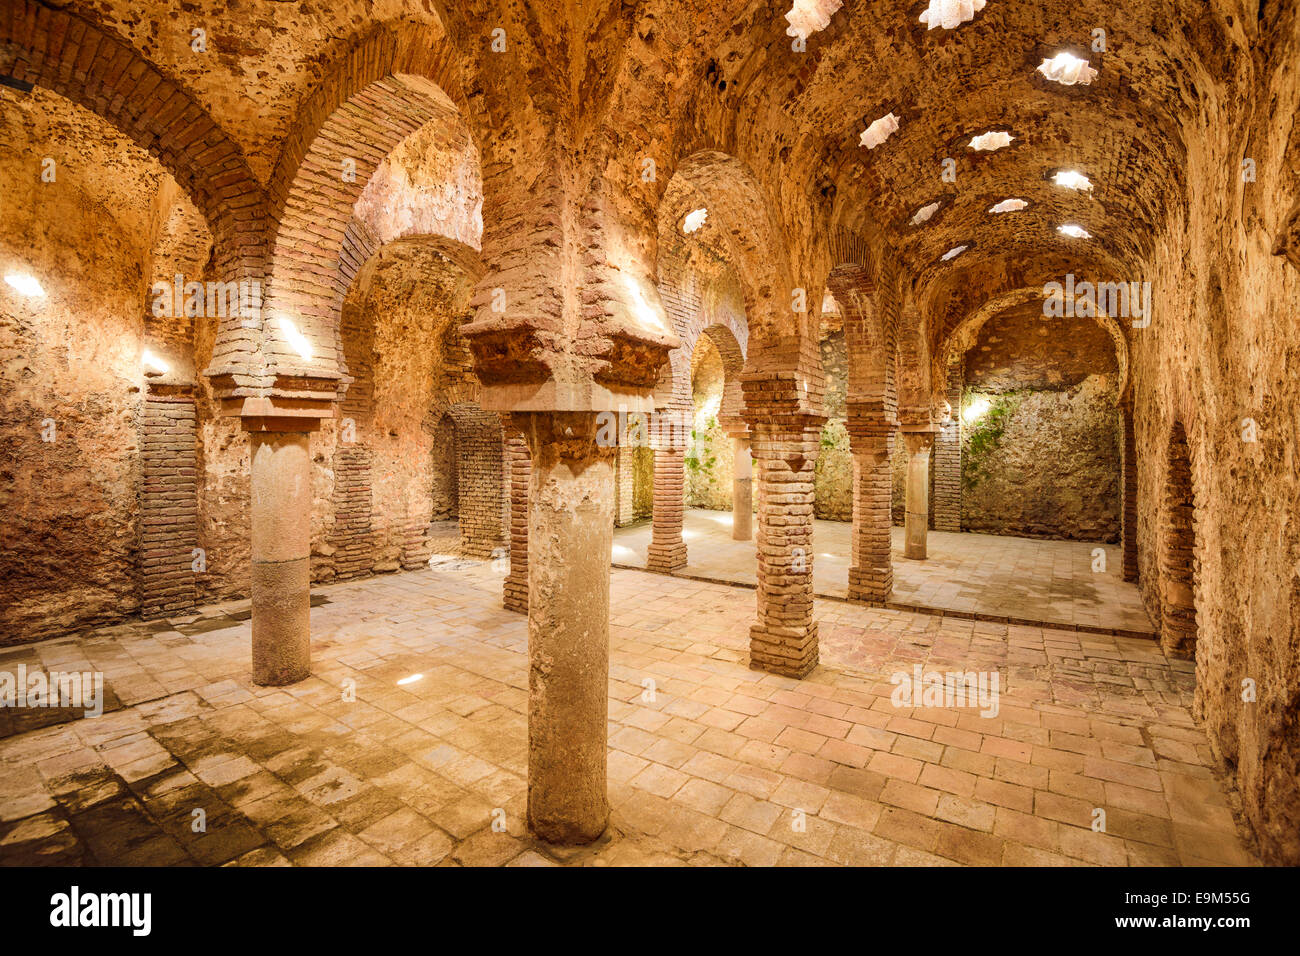 Ronda, Spain at the Arab Baths dating from the 11th-12th Centuries. - Stock Image